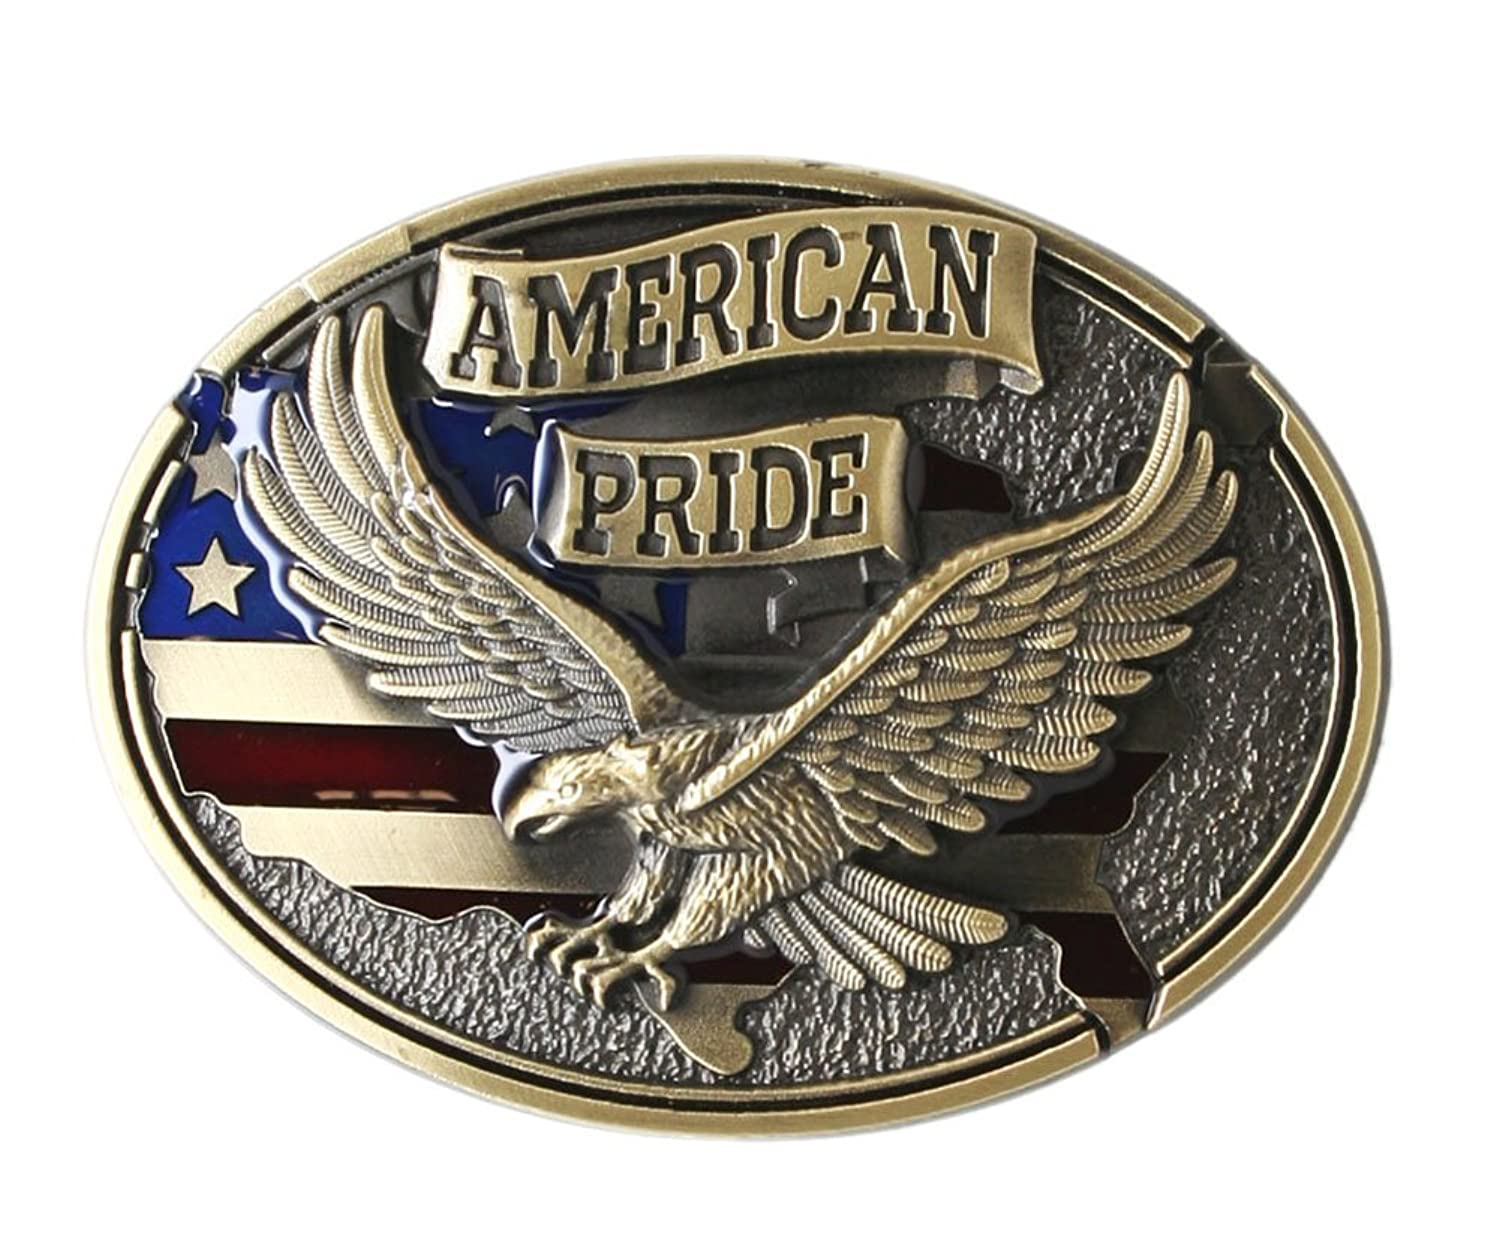 American Pride Eagle Belt Buckle - Bronze Color 60e335bd19